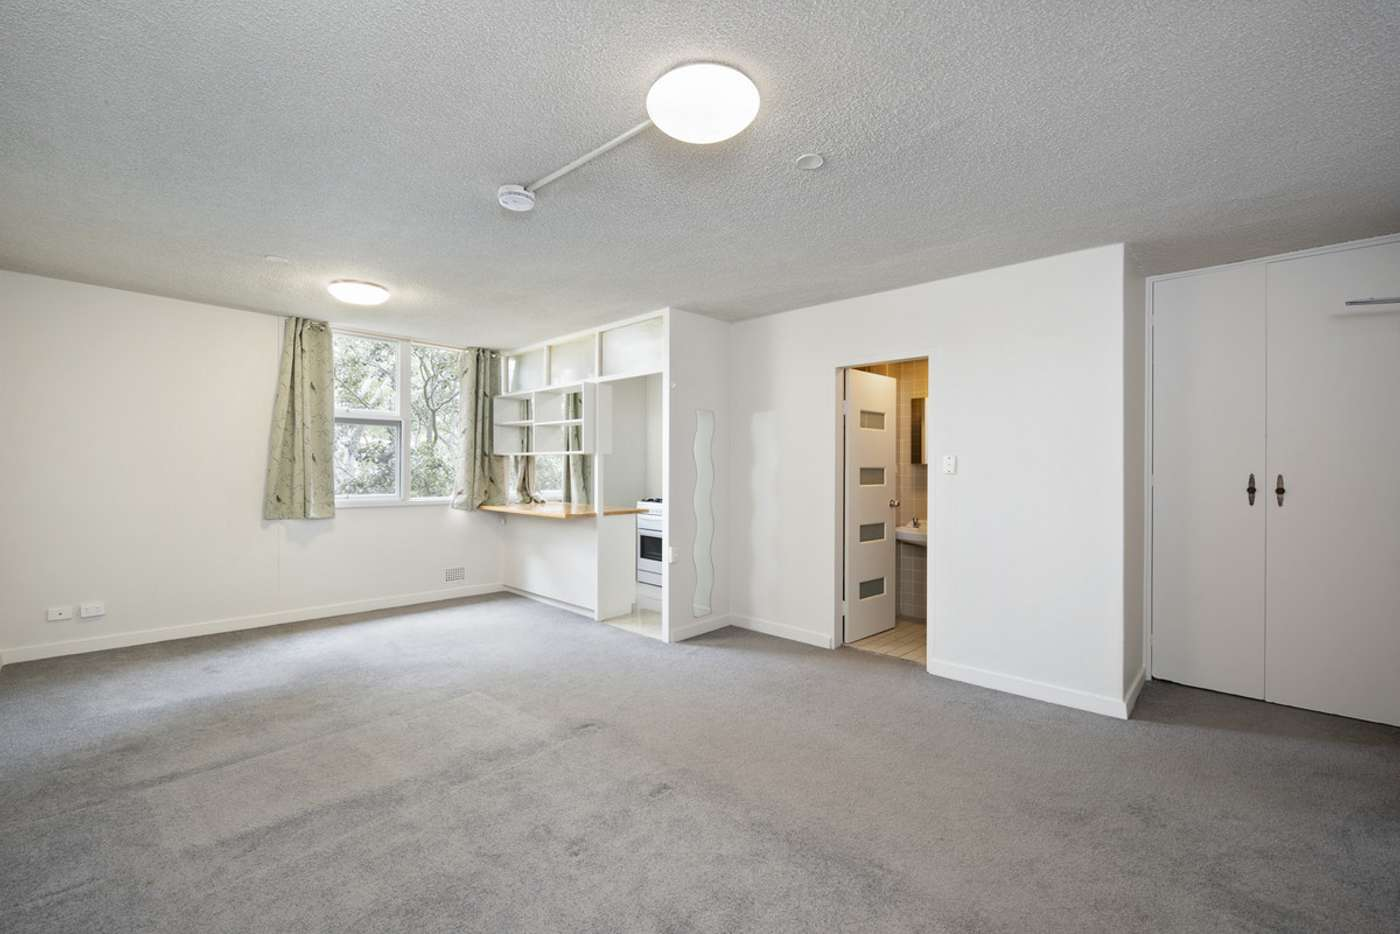 Main view of Homely apartment listing, 712/22 Doris Street, North Sydney NSW 2060